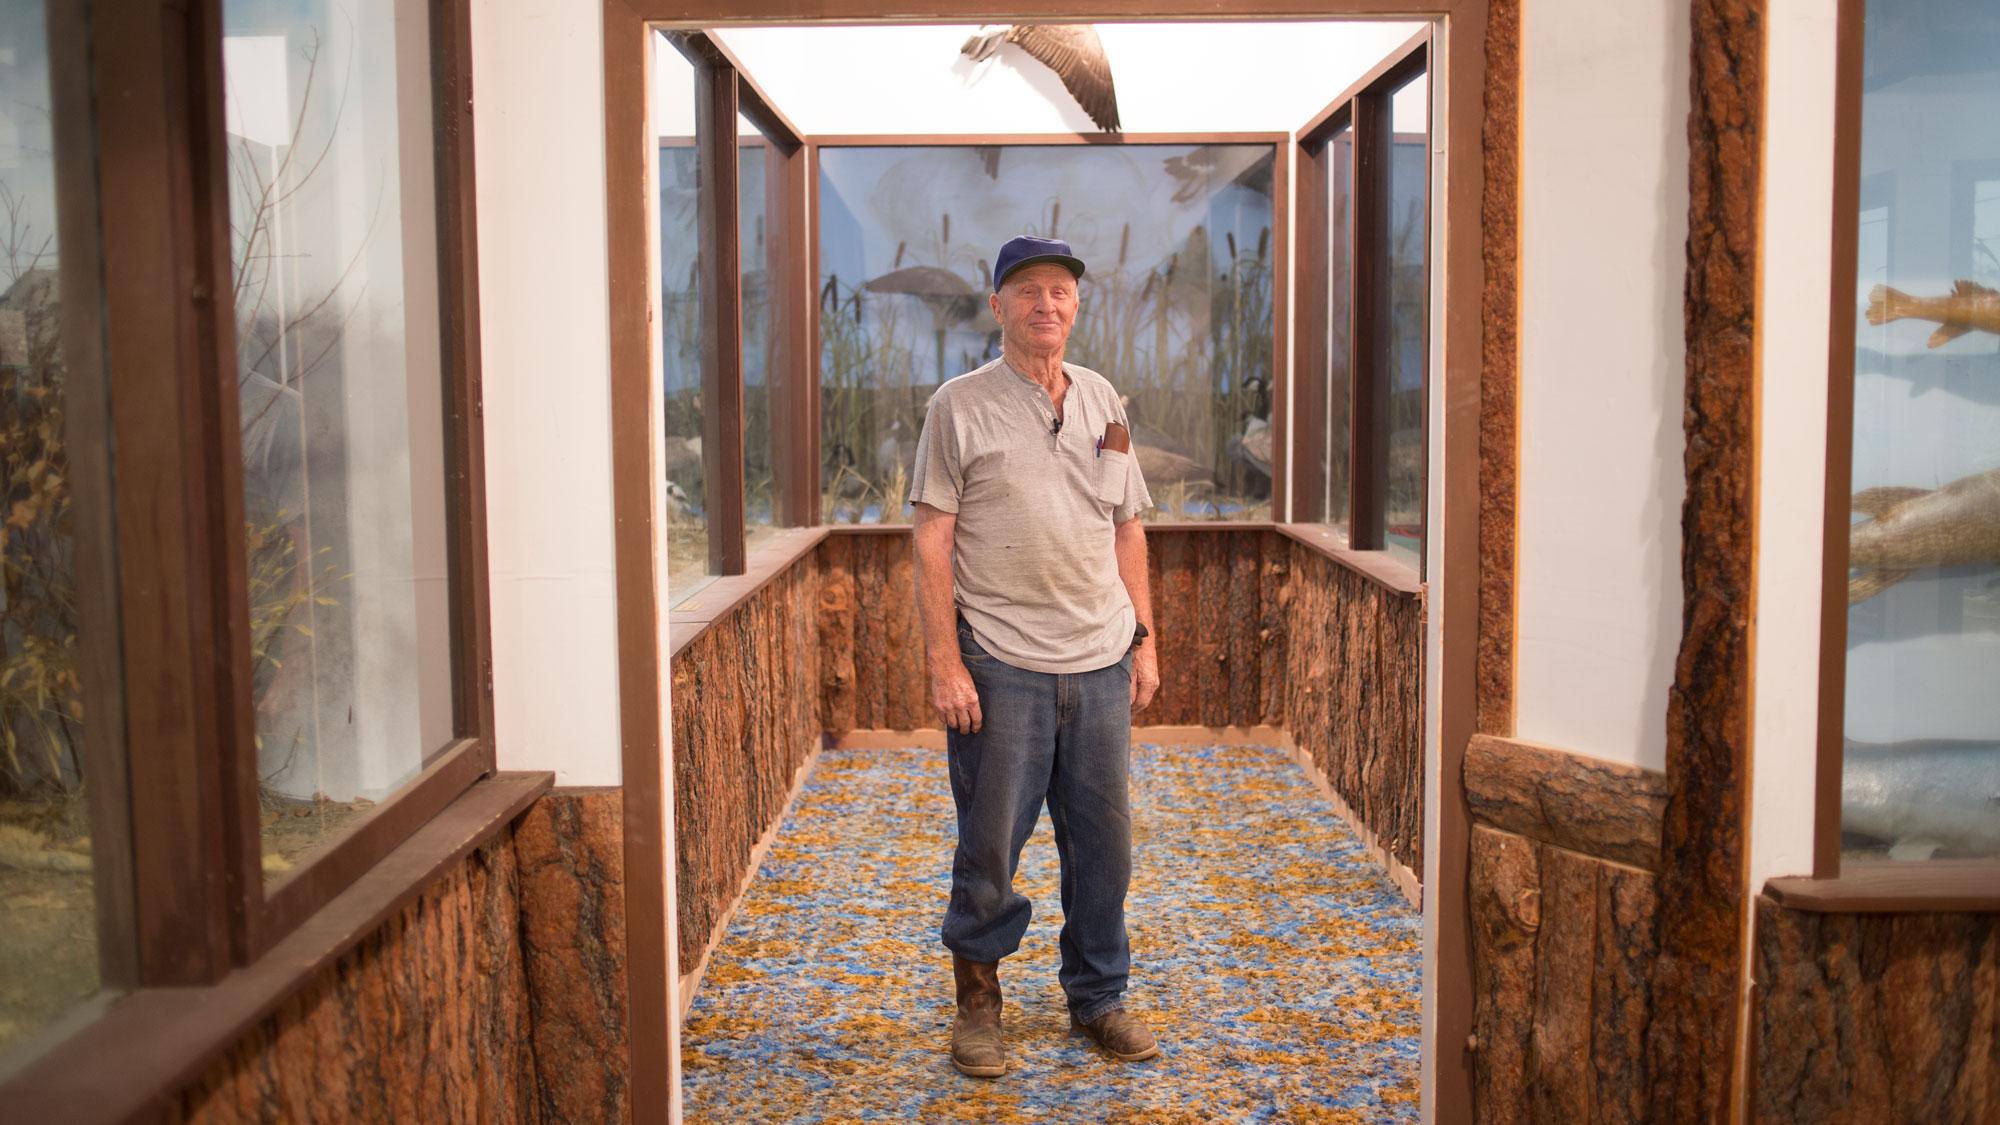 Montana mccone county circle - Wendell Pawlowski Curator Of The Mccone County Museum In Circle Montana